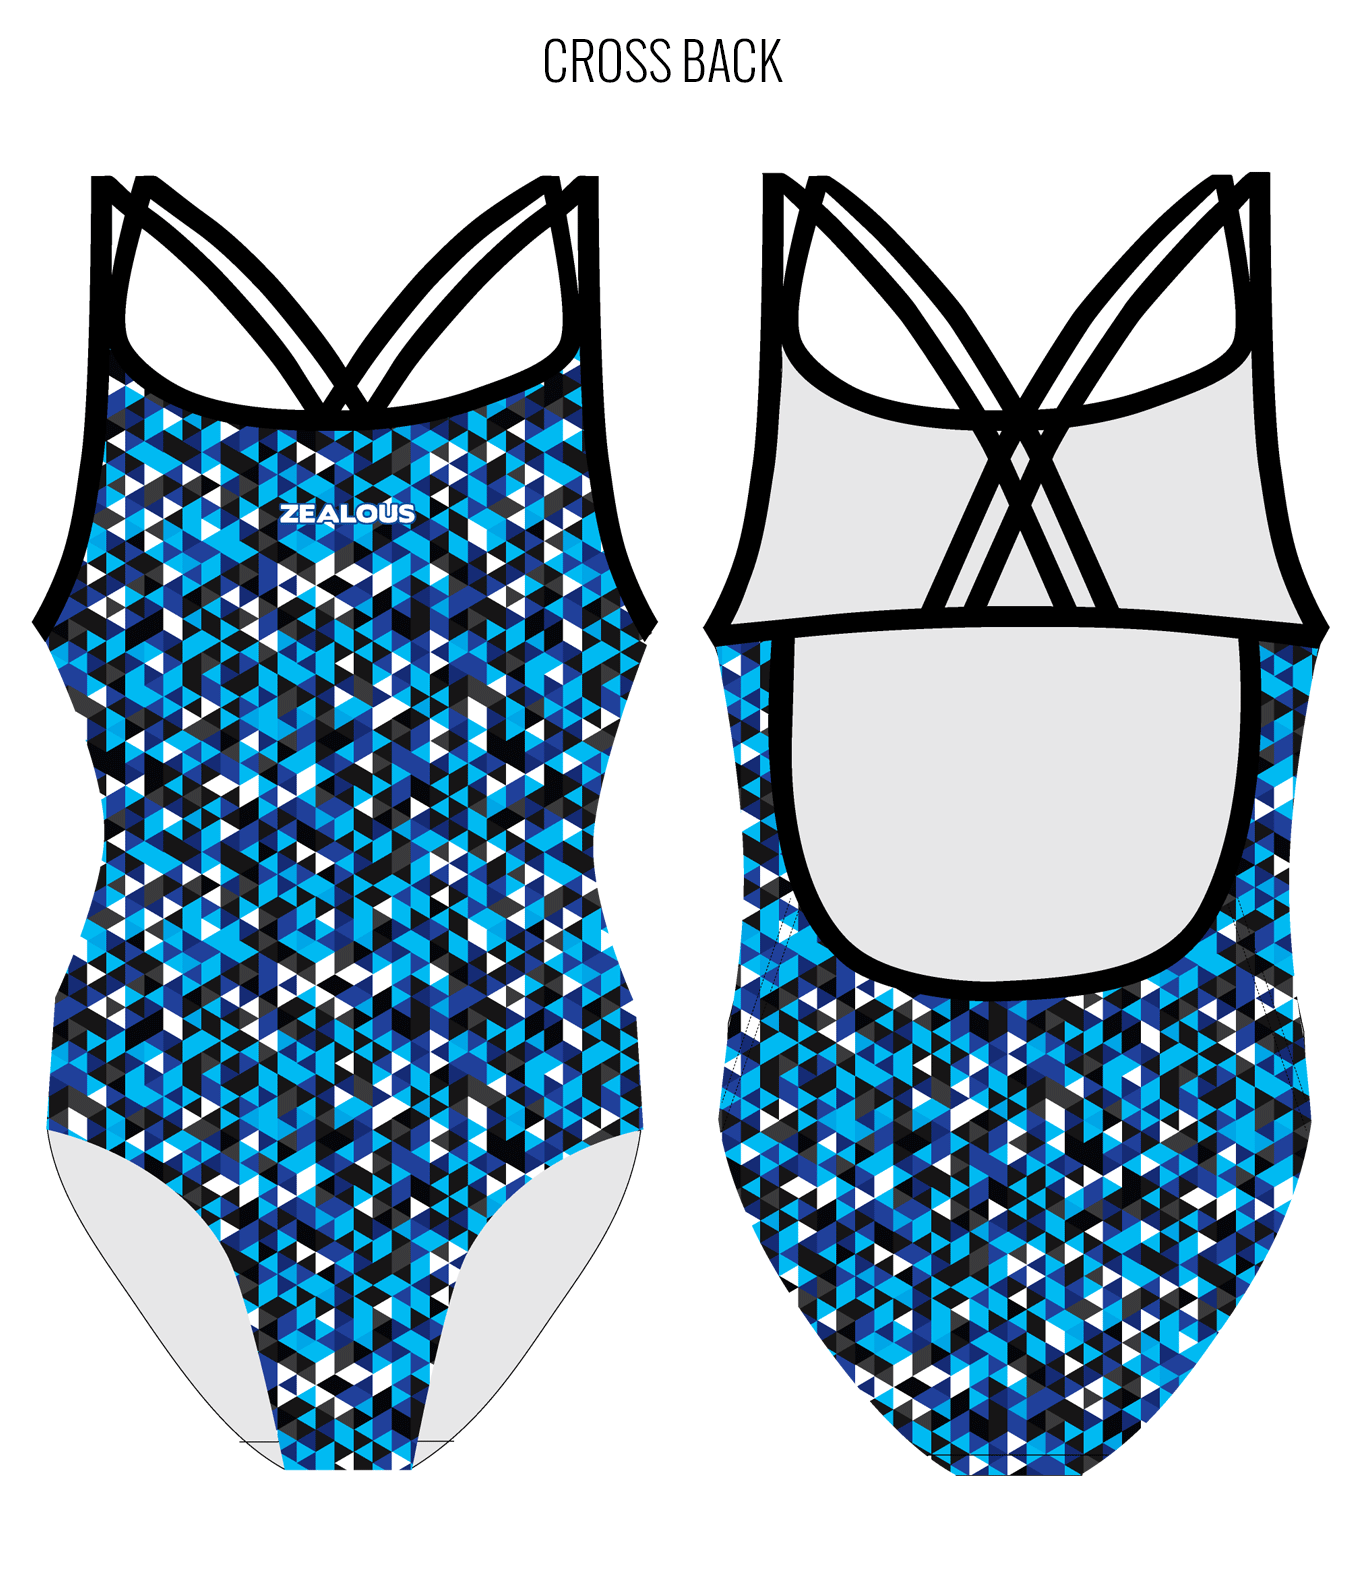 TEAM ZEALOUS {B/W/B} - FEMALE Personalised Swimwear - Shop Zealous Training Swimwear